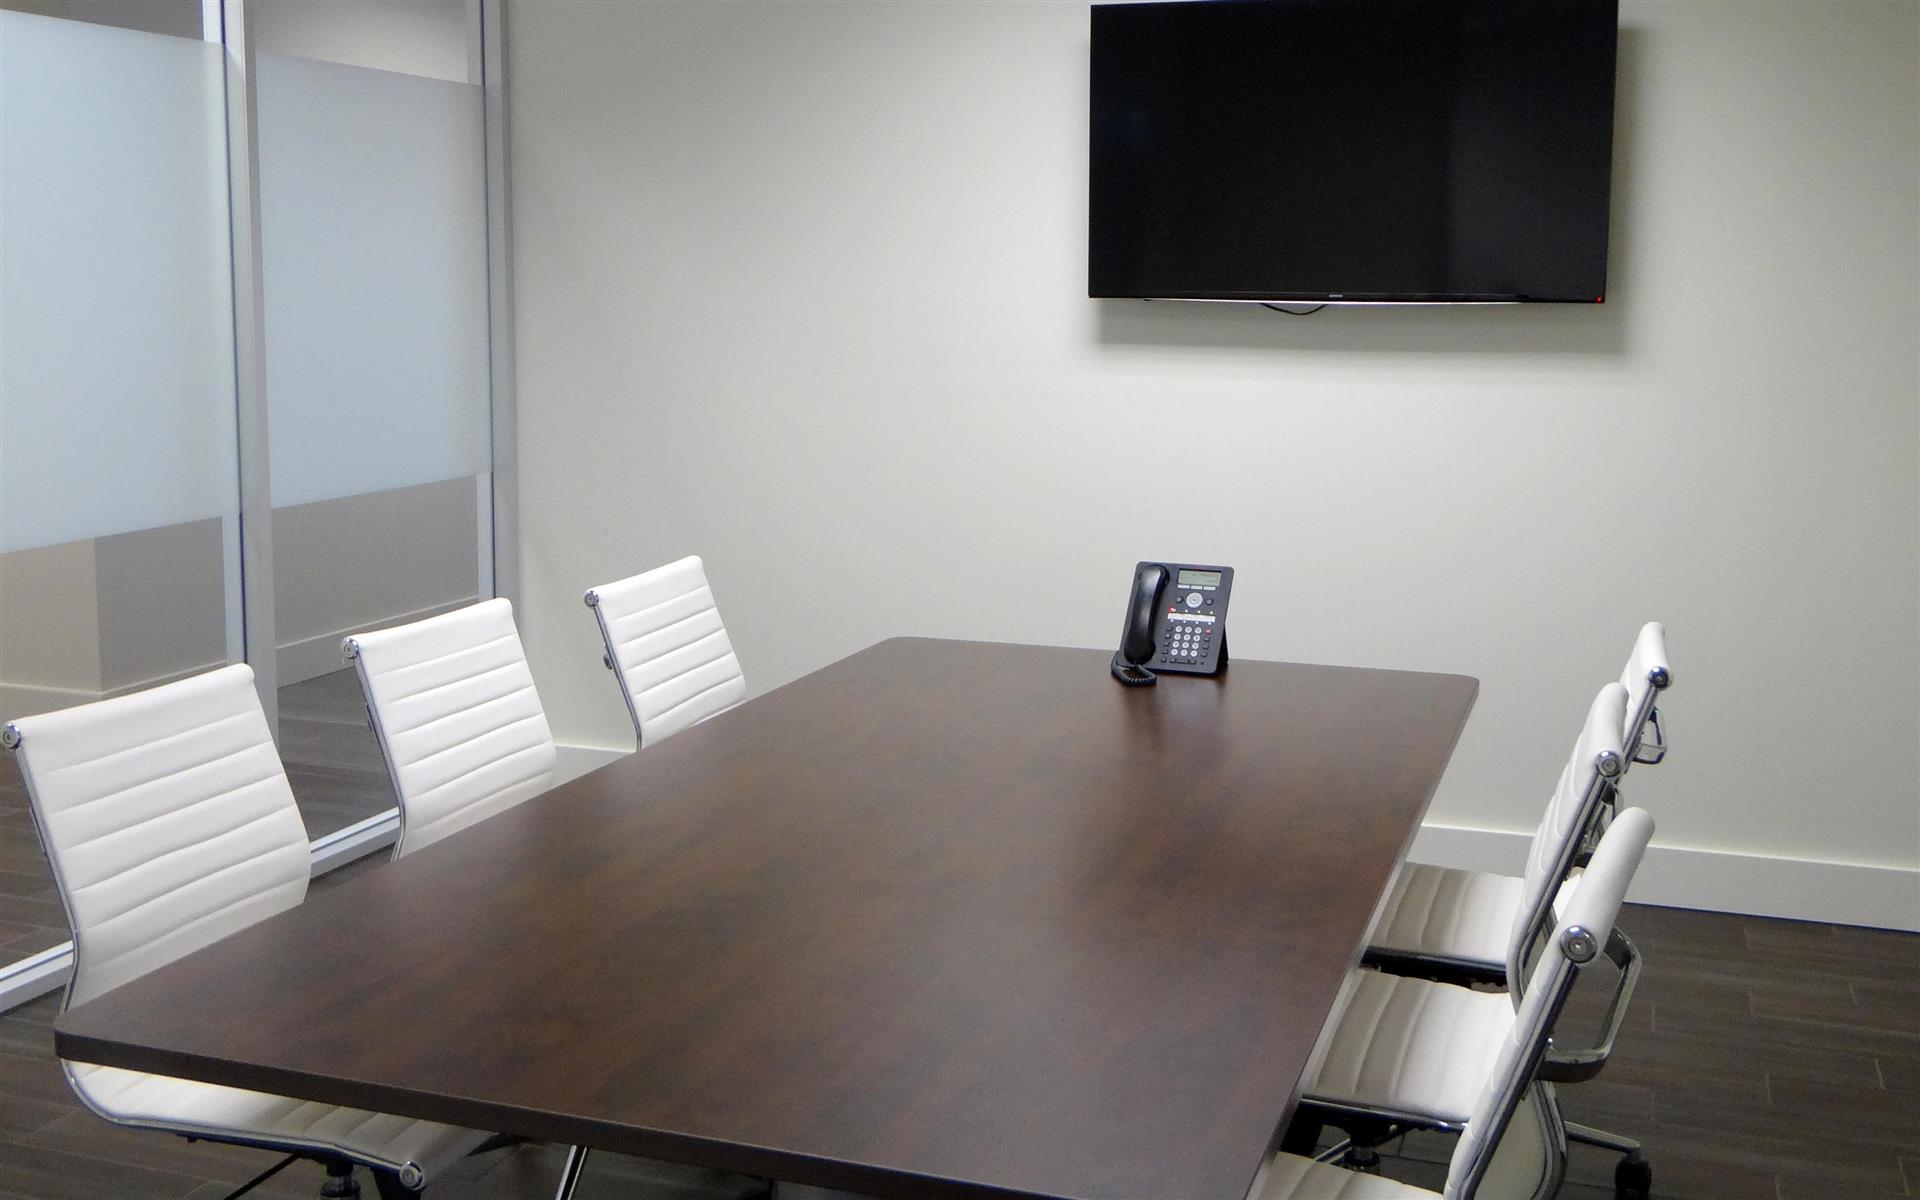 German American Chamber of Commerce of the Southern US - Small conference room